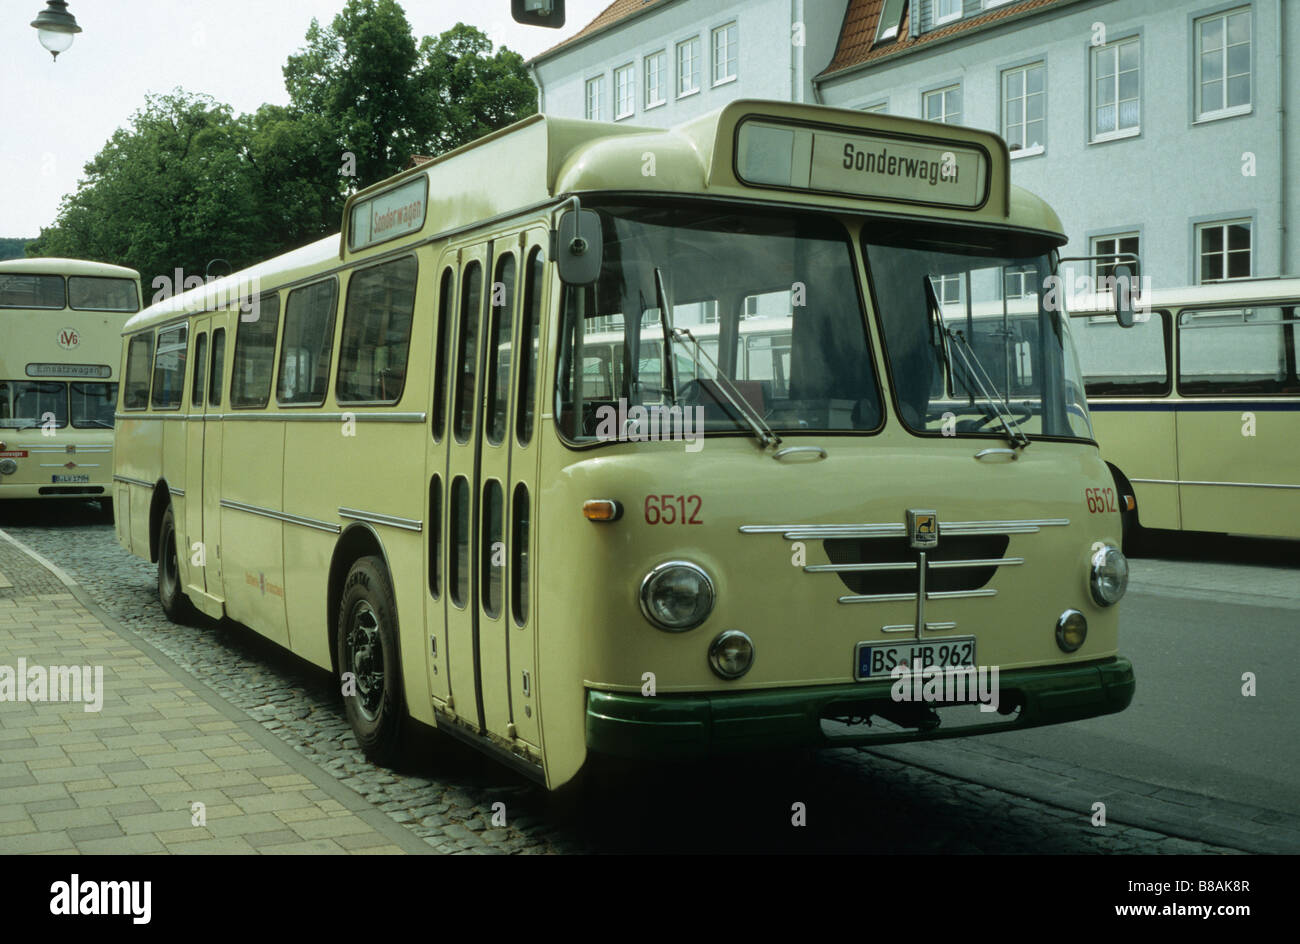 Oldtimer Bus built by Büssing Automobilwerke AG, Braunschweig, Germany Stock Photo